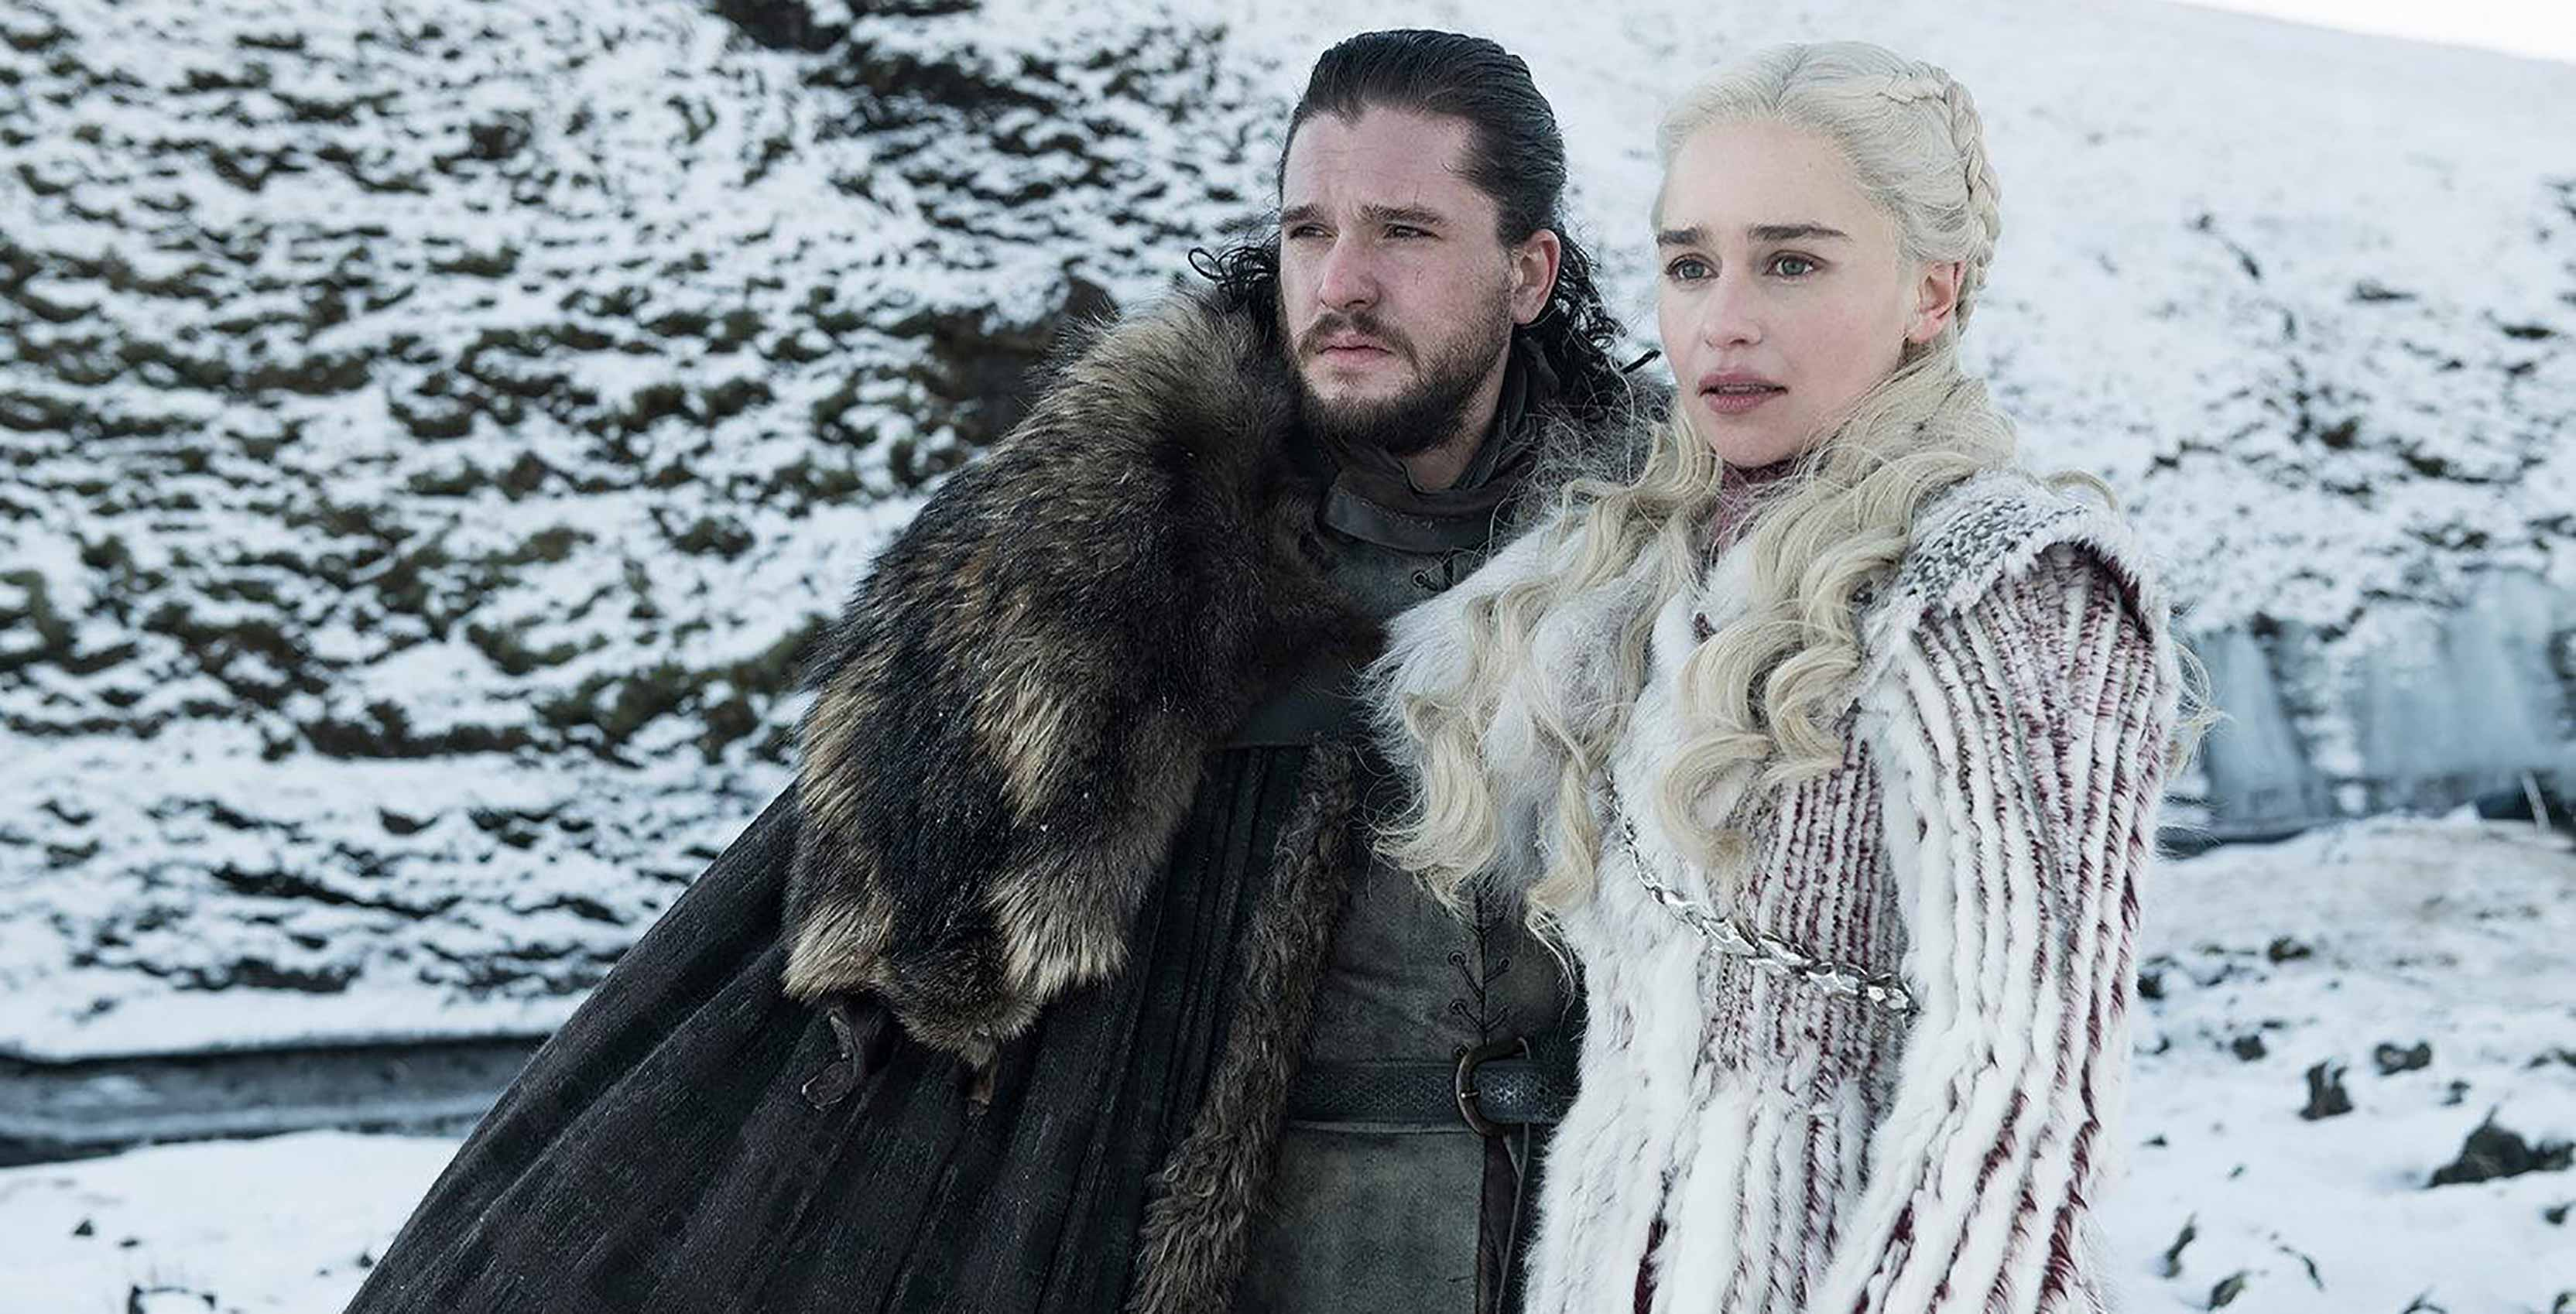 Game of Thrones Jon Snow and Daenerys Targaryen